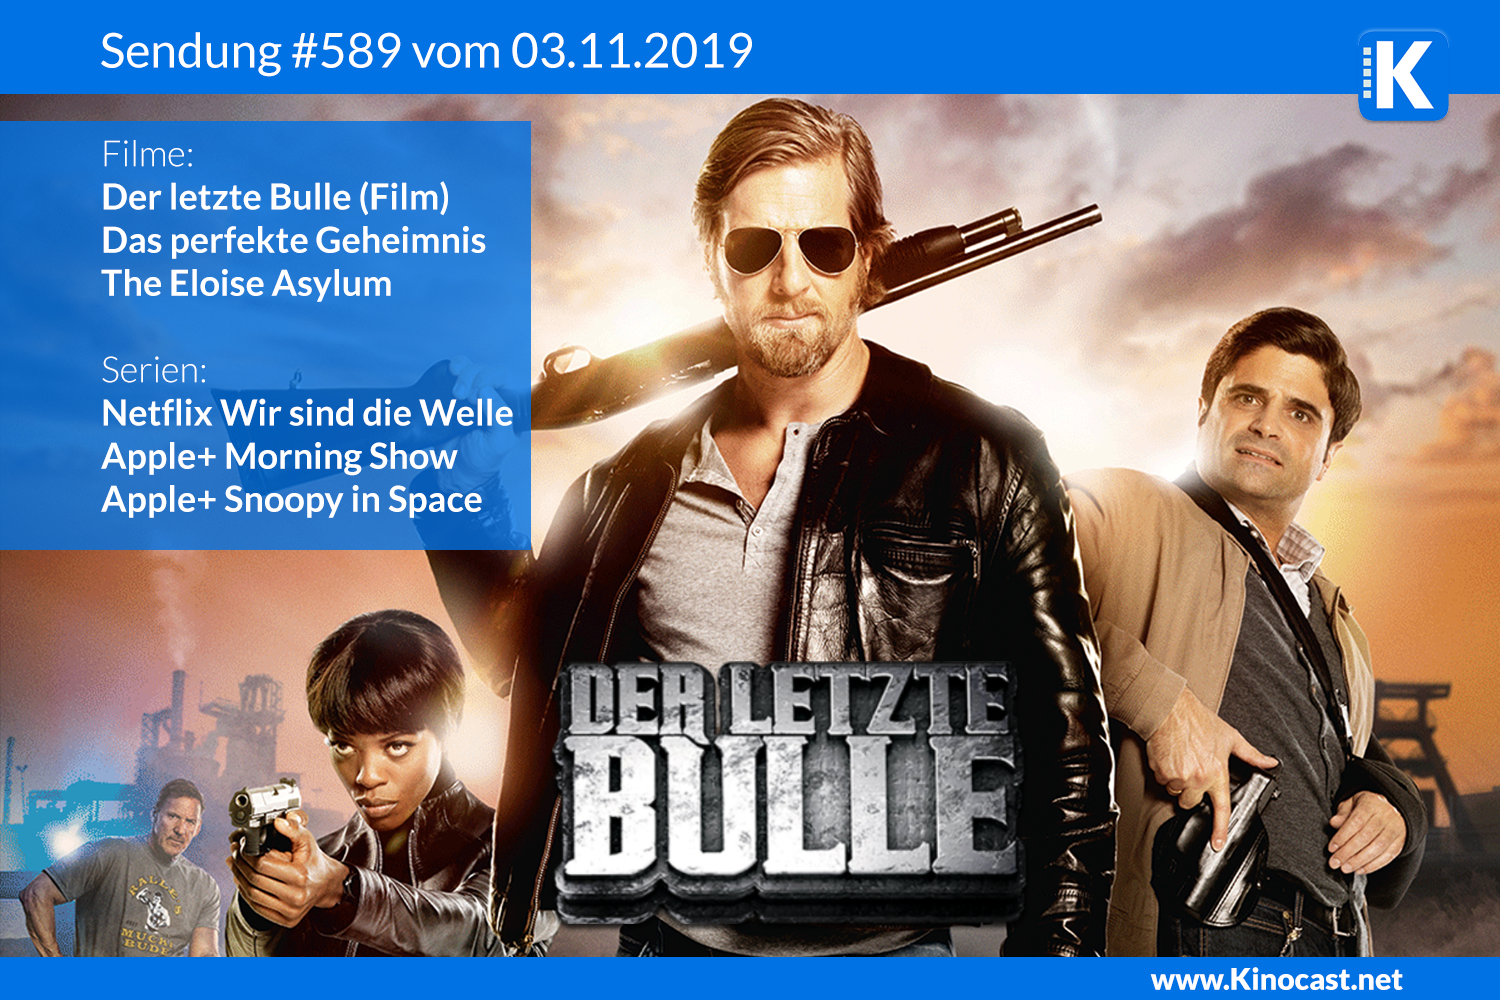 Der letzte Bulle Film Preview Das perfekte Geheimnis Download film german deutsch